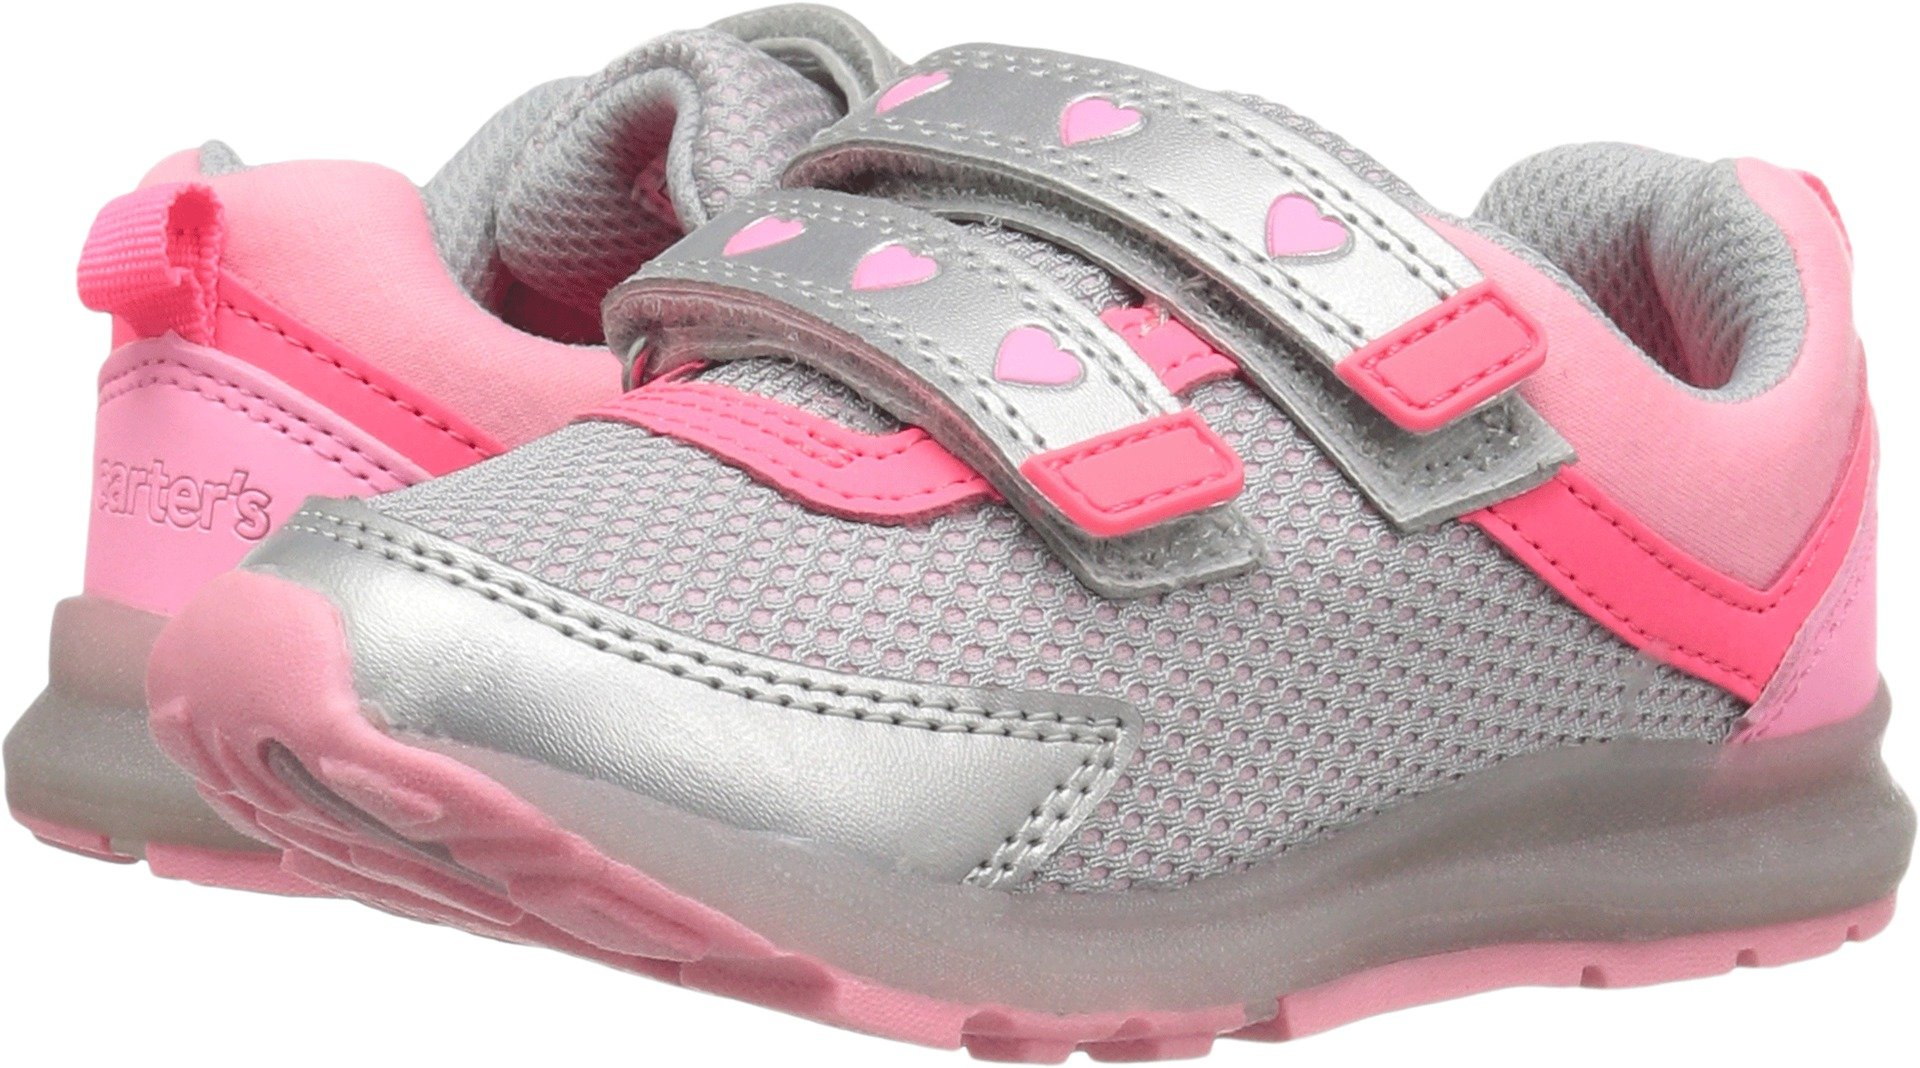 Carter's Boys' Kids' Record Girl's Light-up Athletic Sneaker, Silver/Pink, 7 M US Toddler